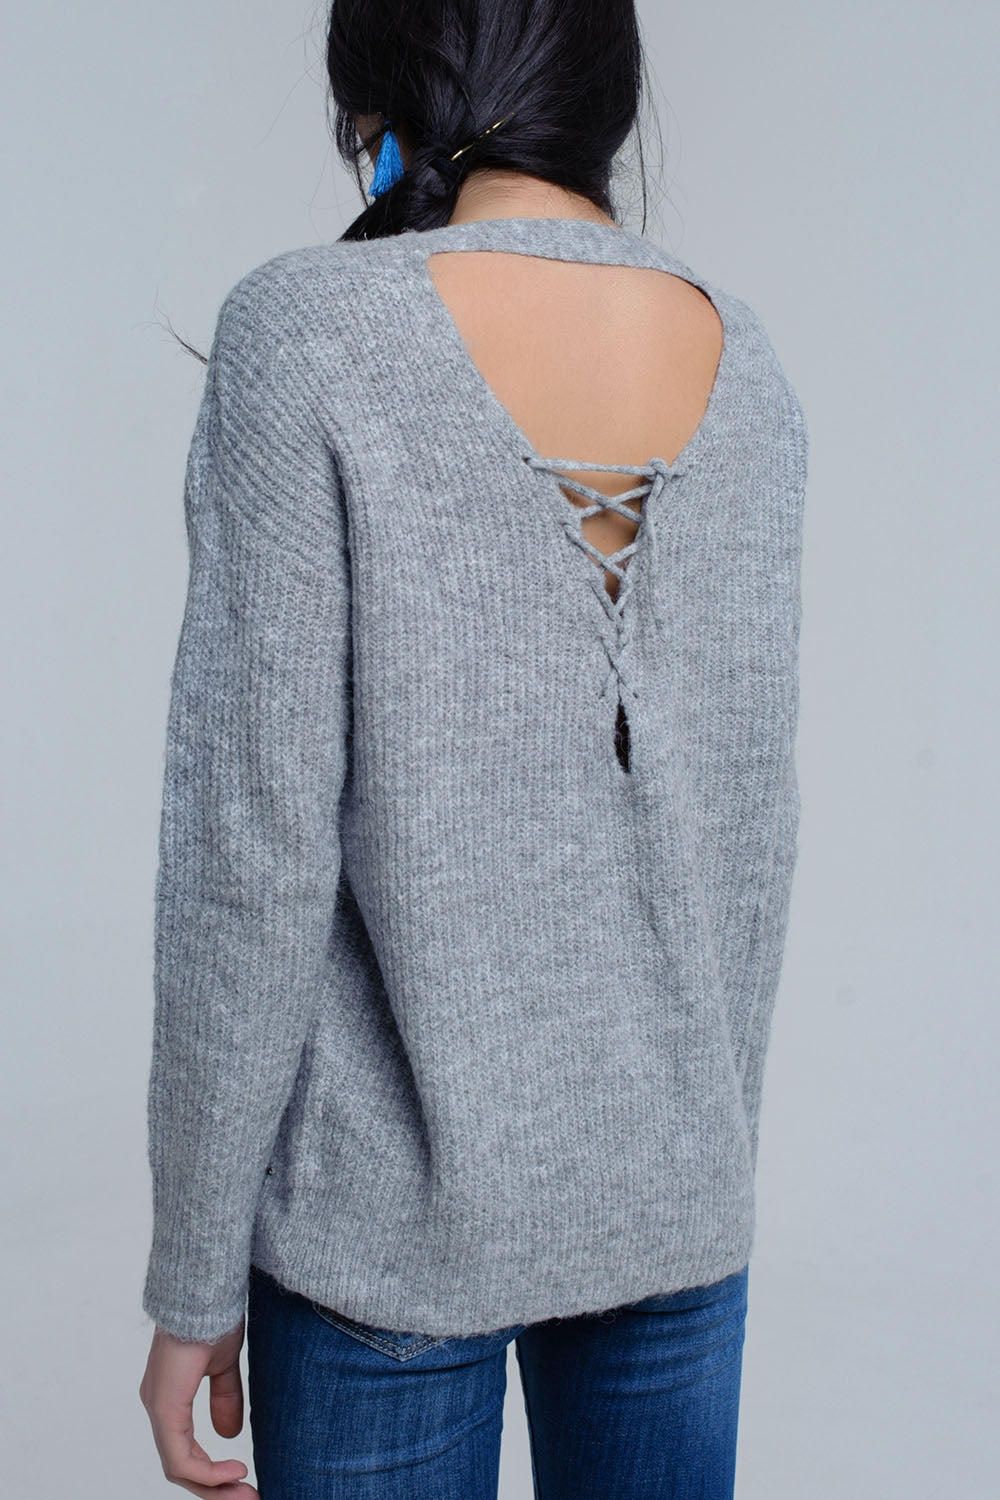 Gray Knitted Sweater With Tie-Back Closure